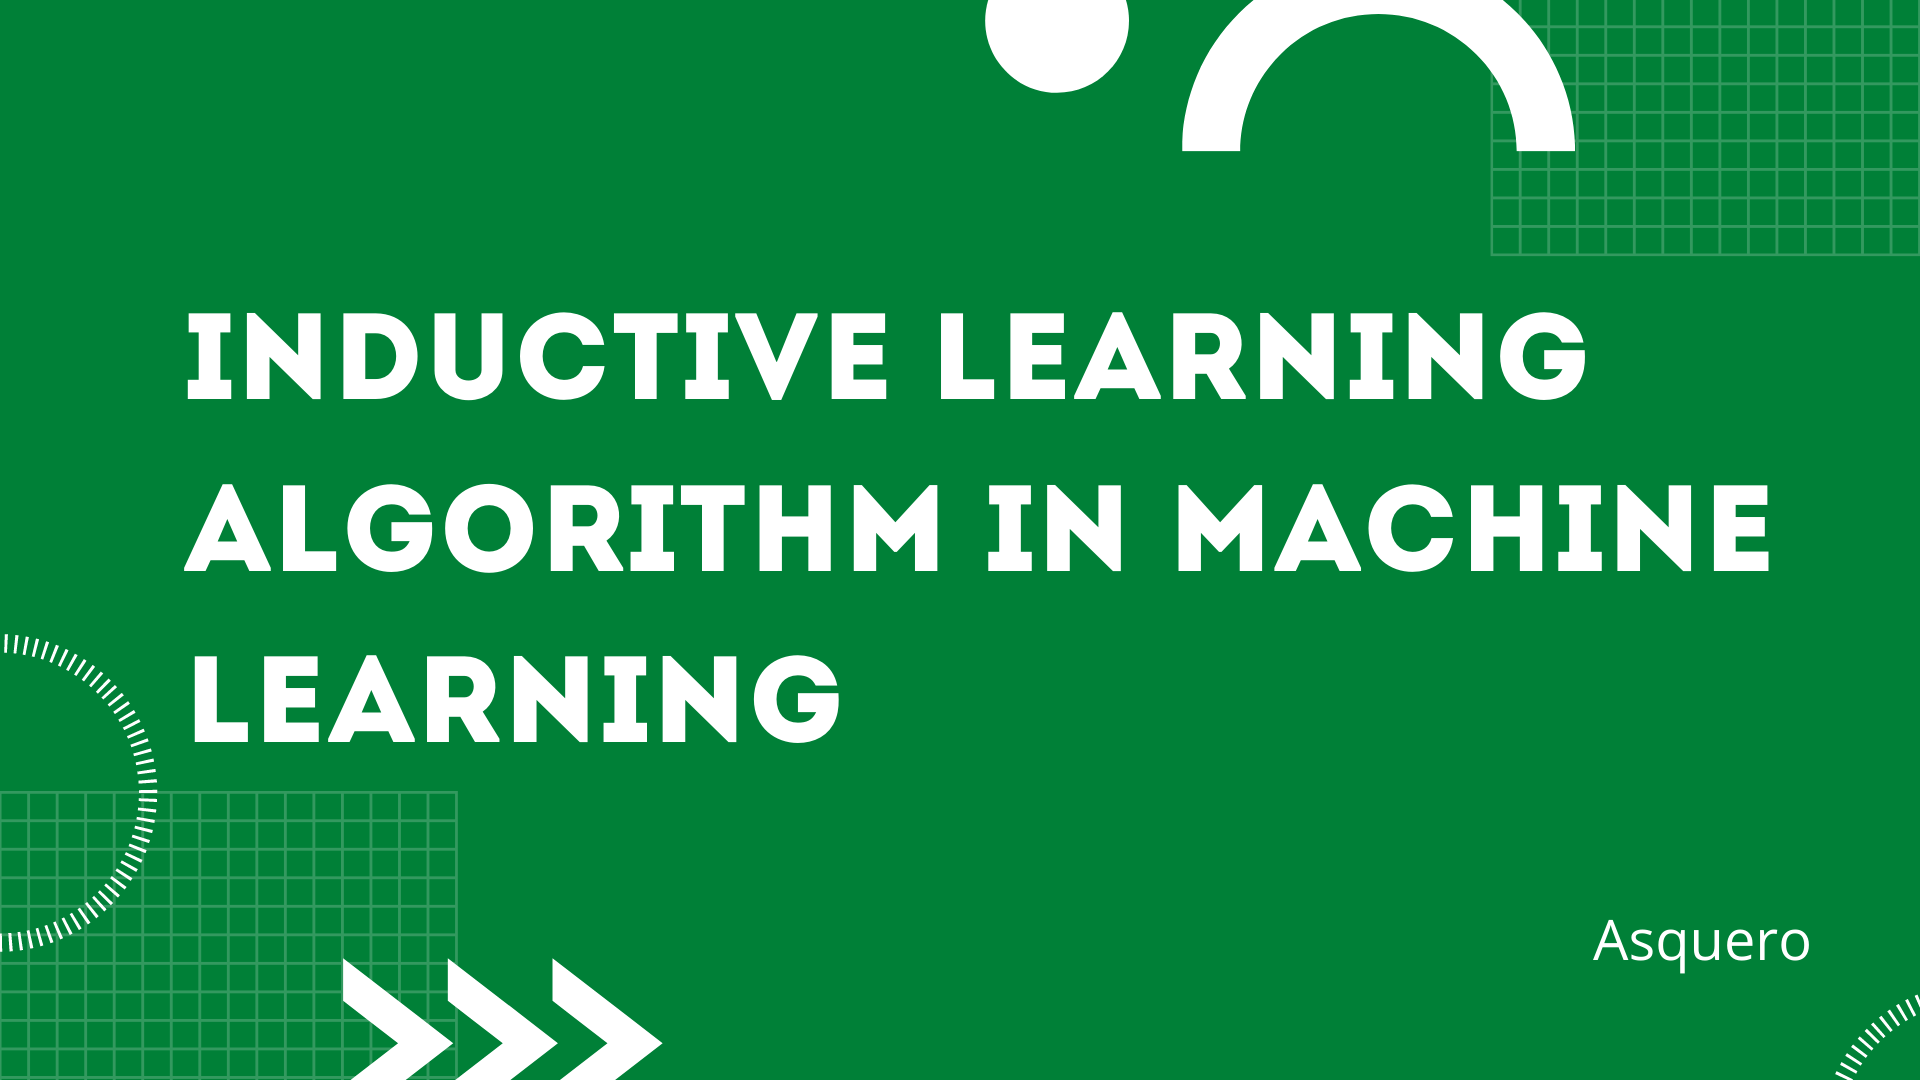 Inductive Learning Algorithm in Machine Learning